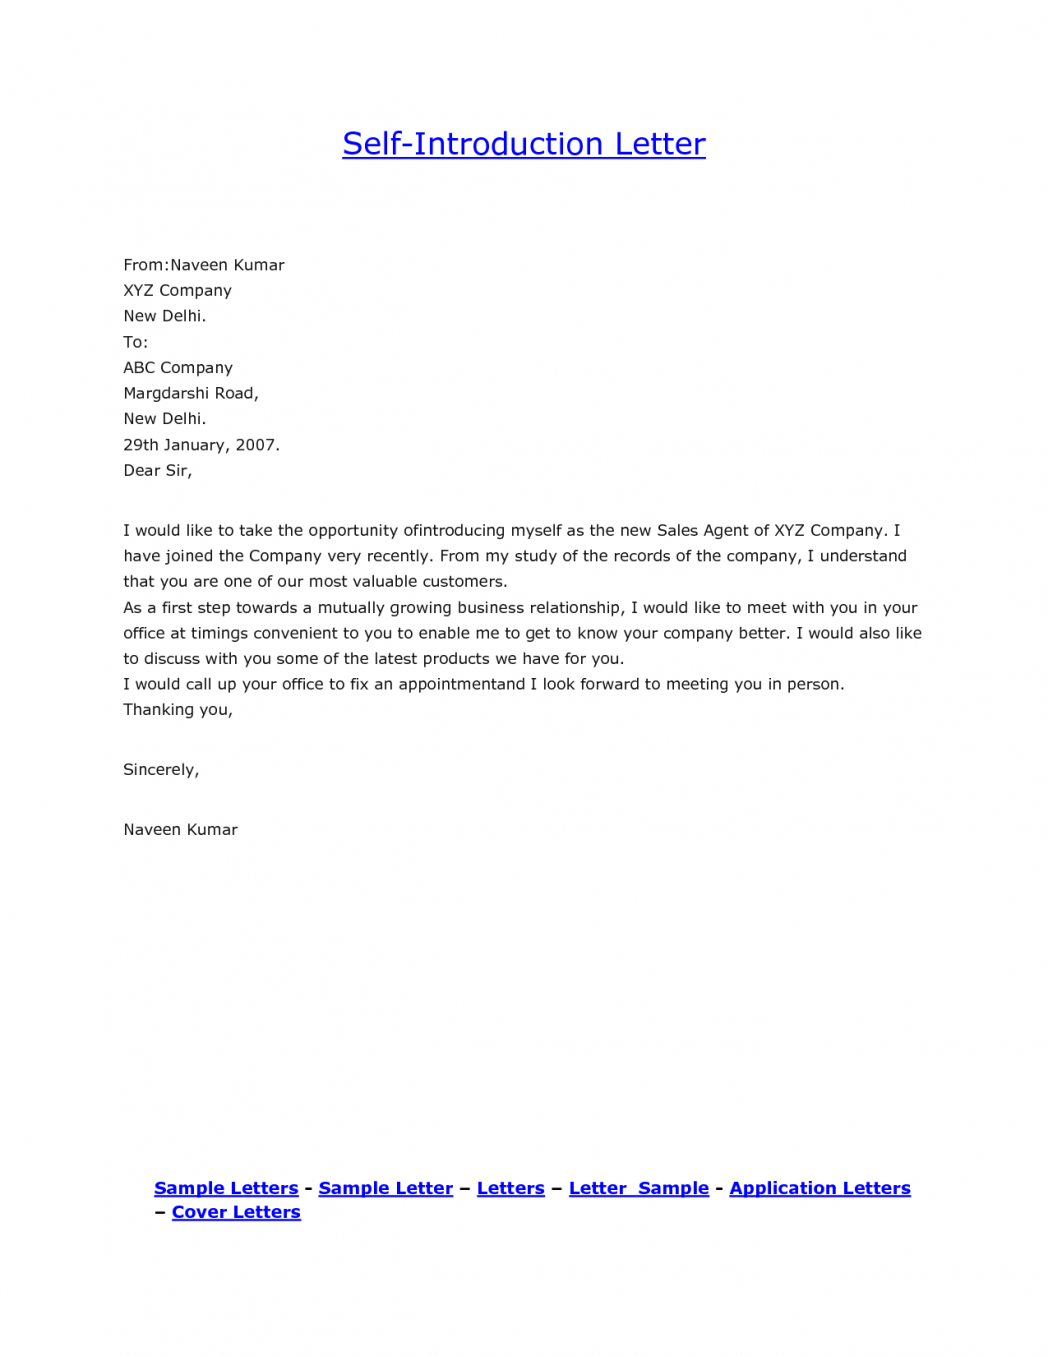 020 Introducing Myself Essay Self Introduction Introduce Personal Letter Template Sample How To Formally Yourself Via Writing 1048x1356 About Striking In Urdu For Interview Pdf Full